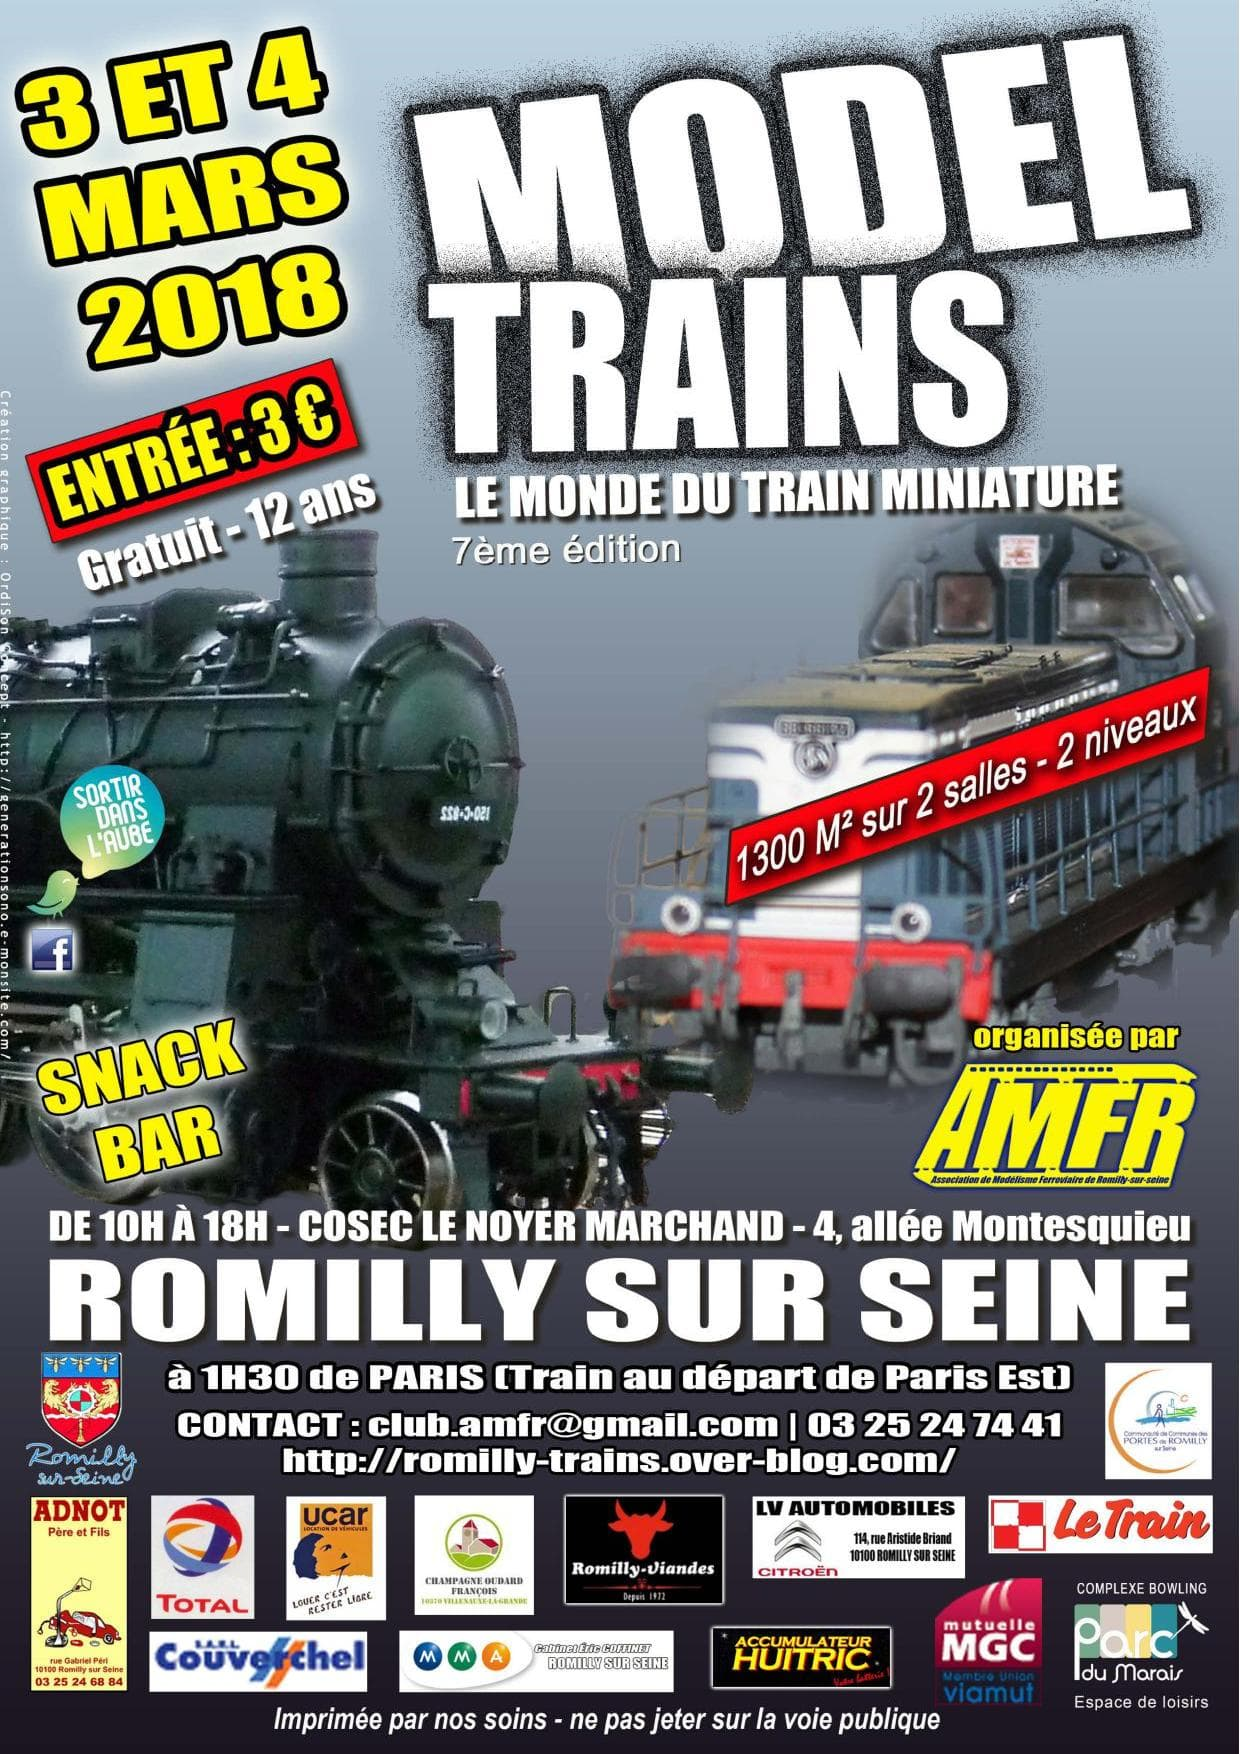 AFFICHE EXPO 2018 FINAL-min-page-001-min.jpg